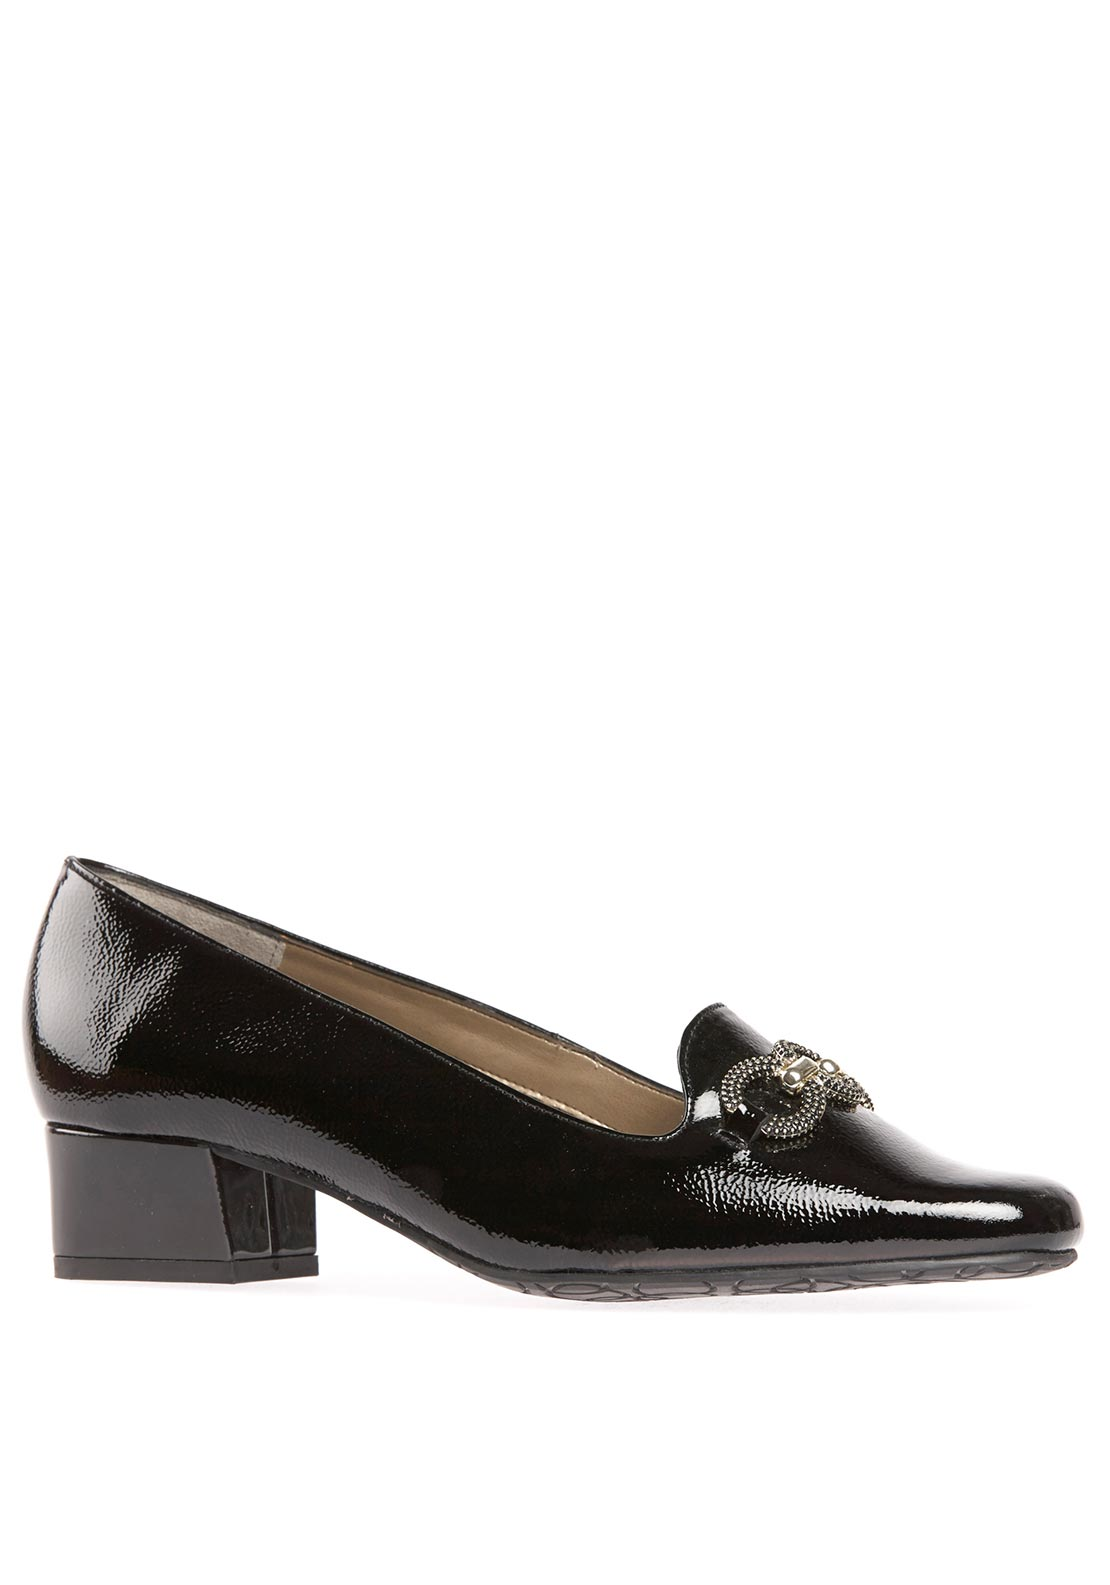 Van Dal Womens Twilight Ring Detail Heeled Patent Leather Shoe, Black